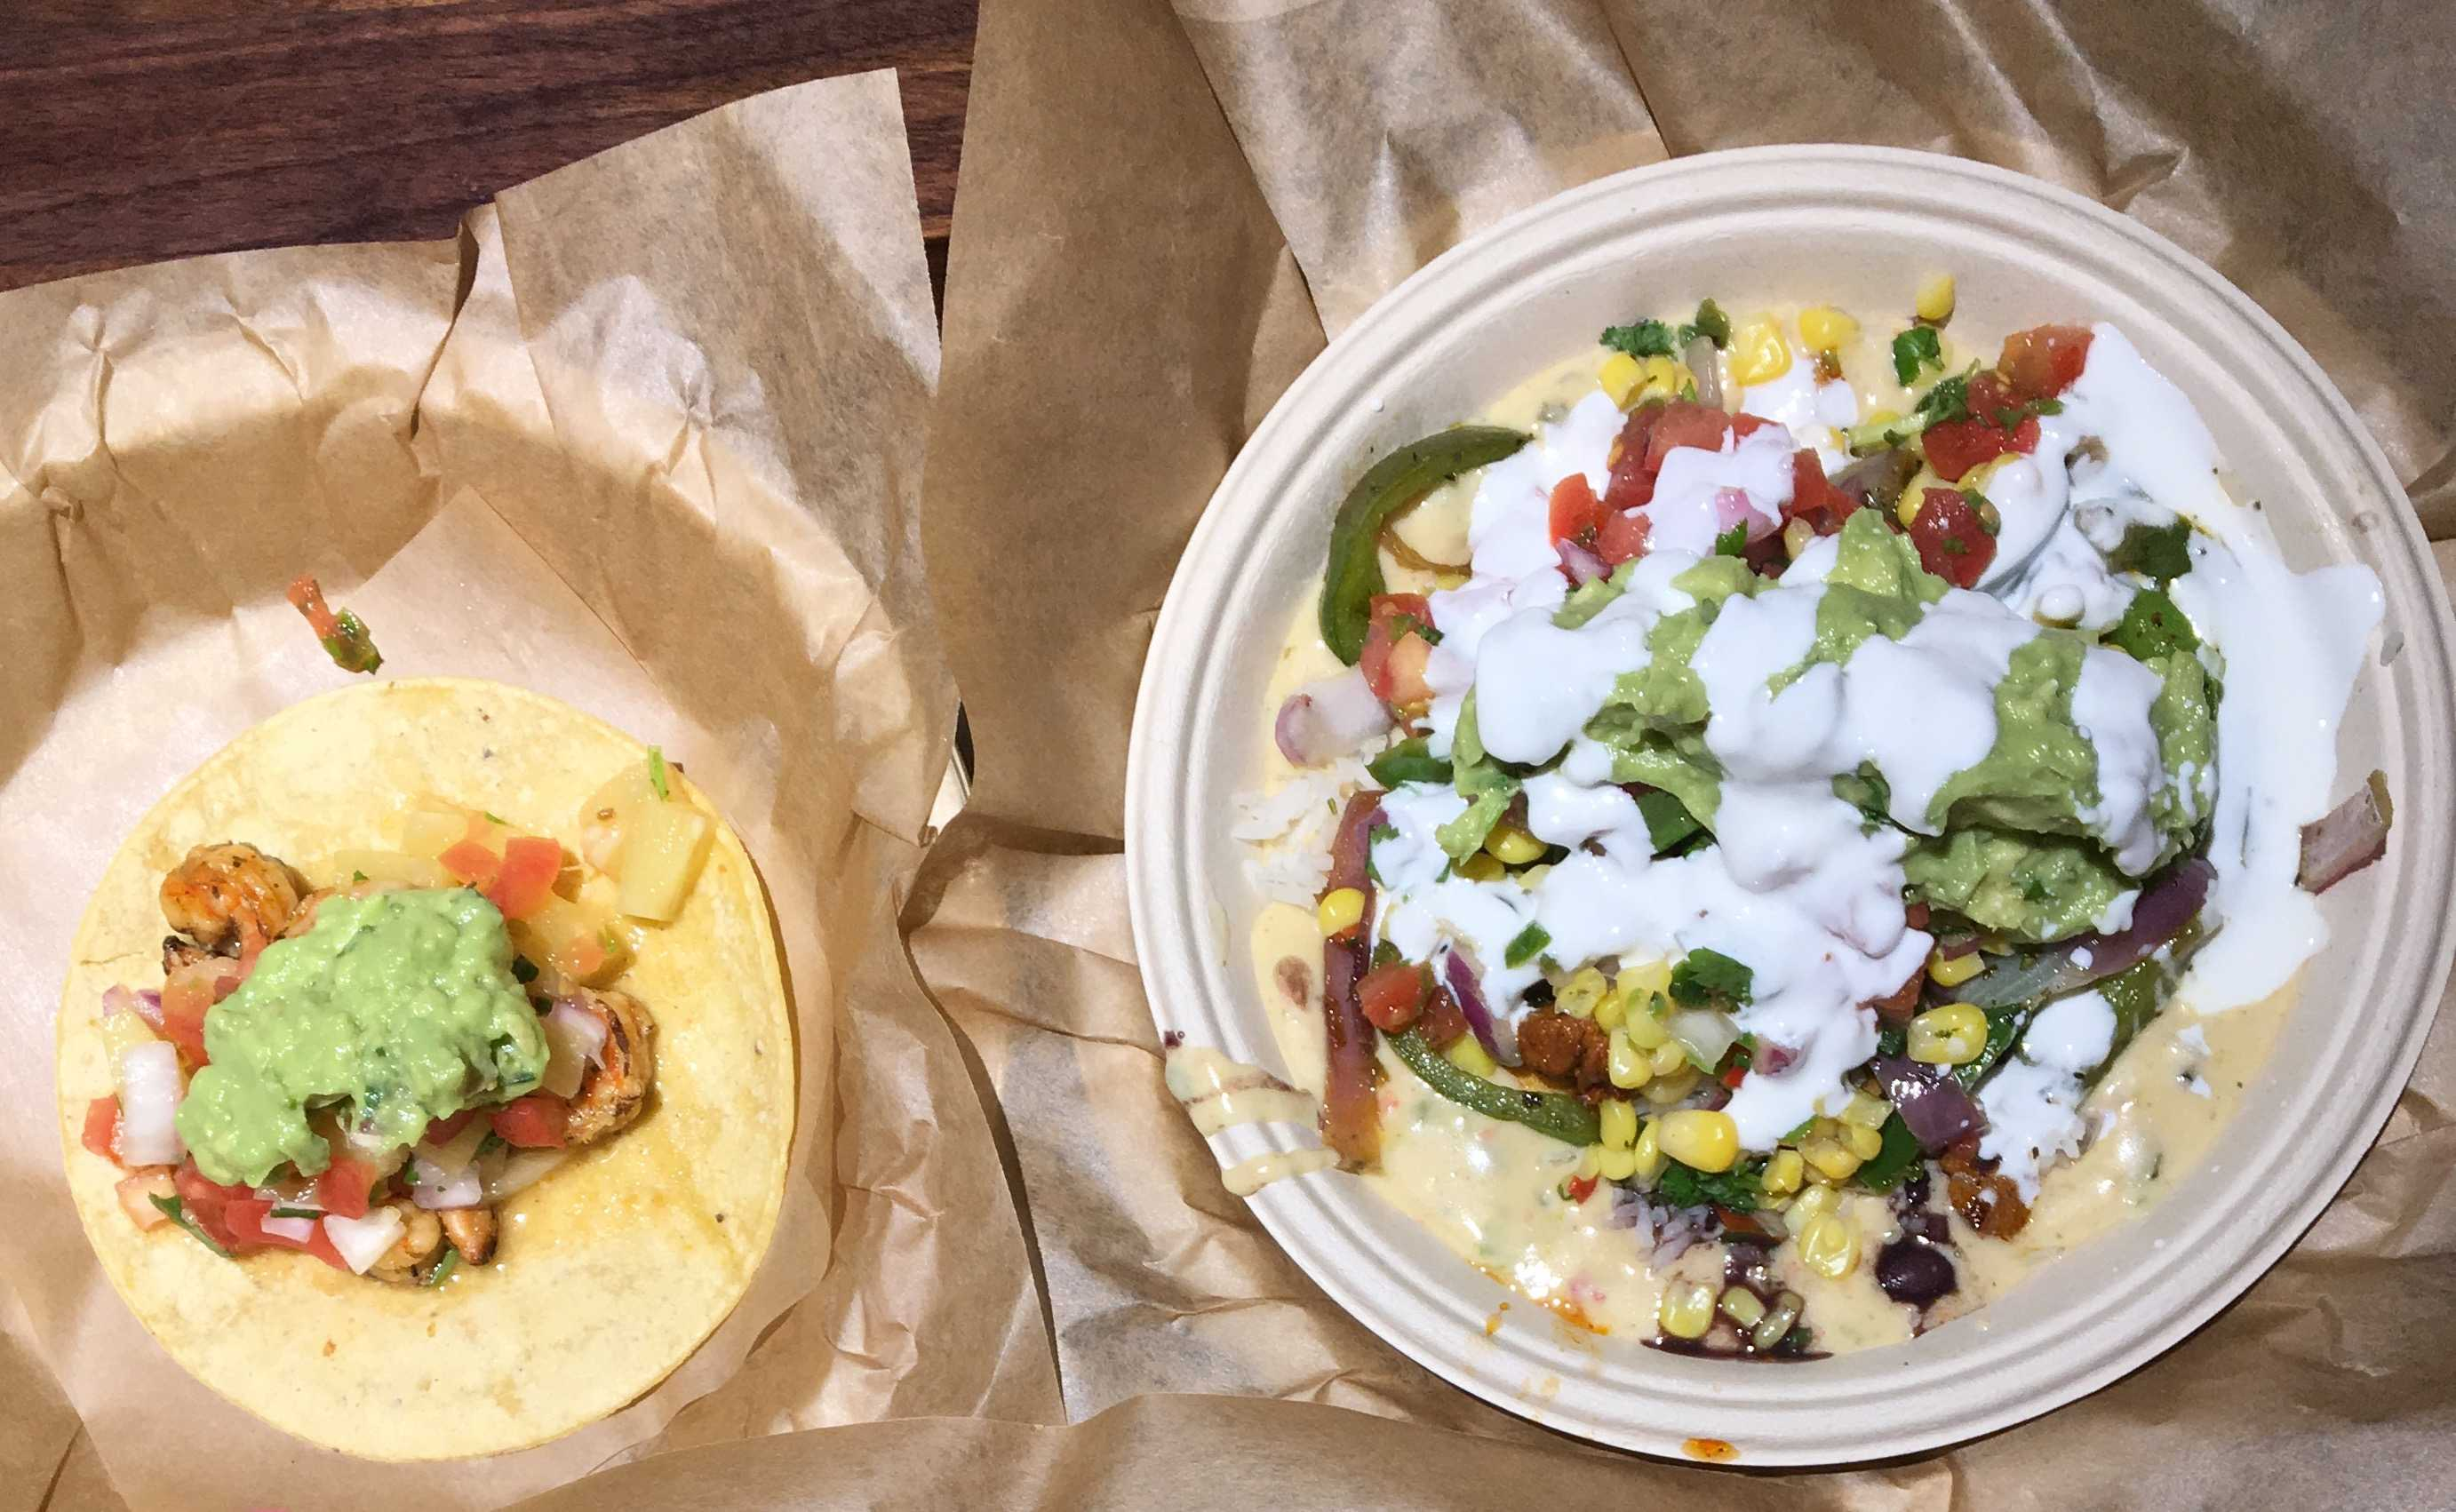 Here are Qdoba's tacos and nachos, both of which are very appetizing.